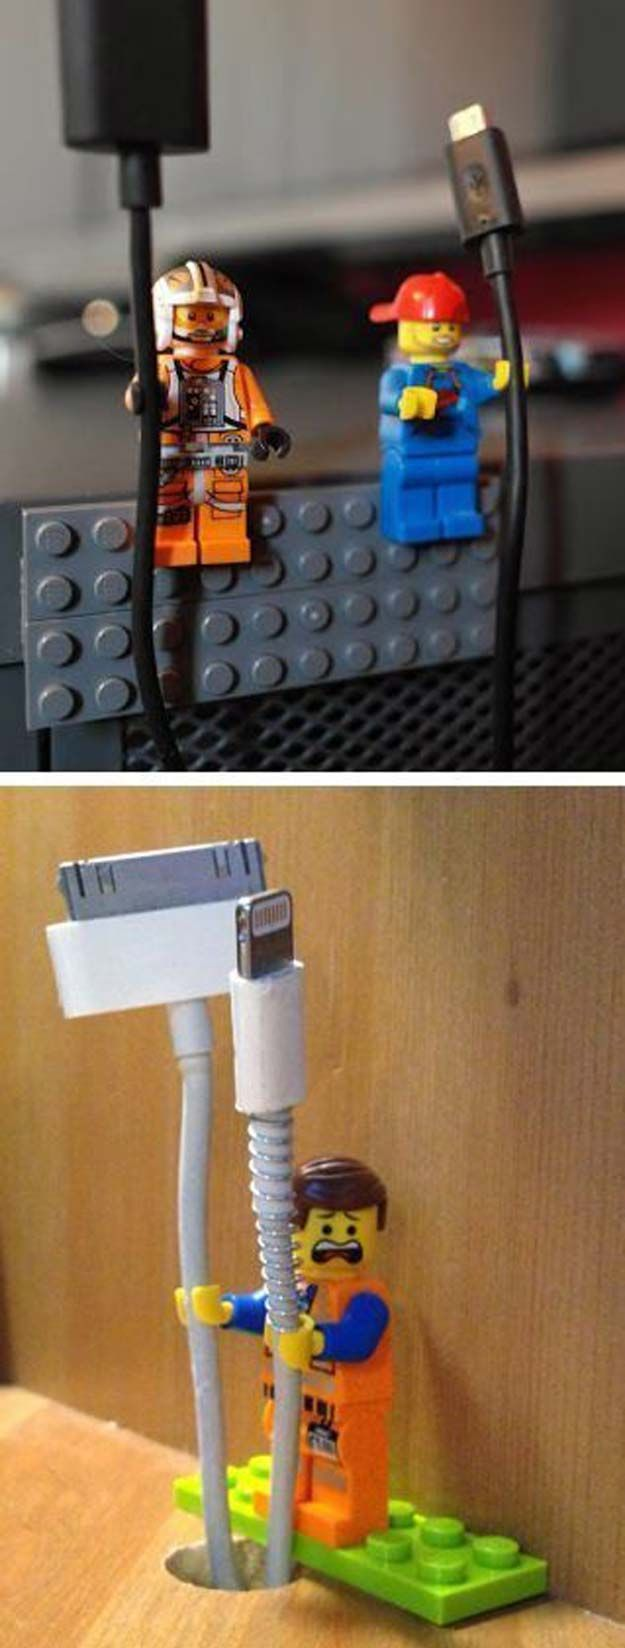 Fun DIY Ideas for Your Desk - DIY Lego Man Cord Holder - Cubicles, Ideas for Teens and Student - Cheap Dollar Tree Storage and Decor for Offices and Home - Cool DIY Projects and Crafts for Teens http://diyprojectsforteens.com/diy-ideas-desk